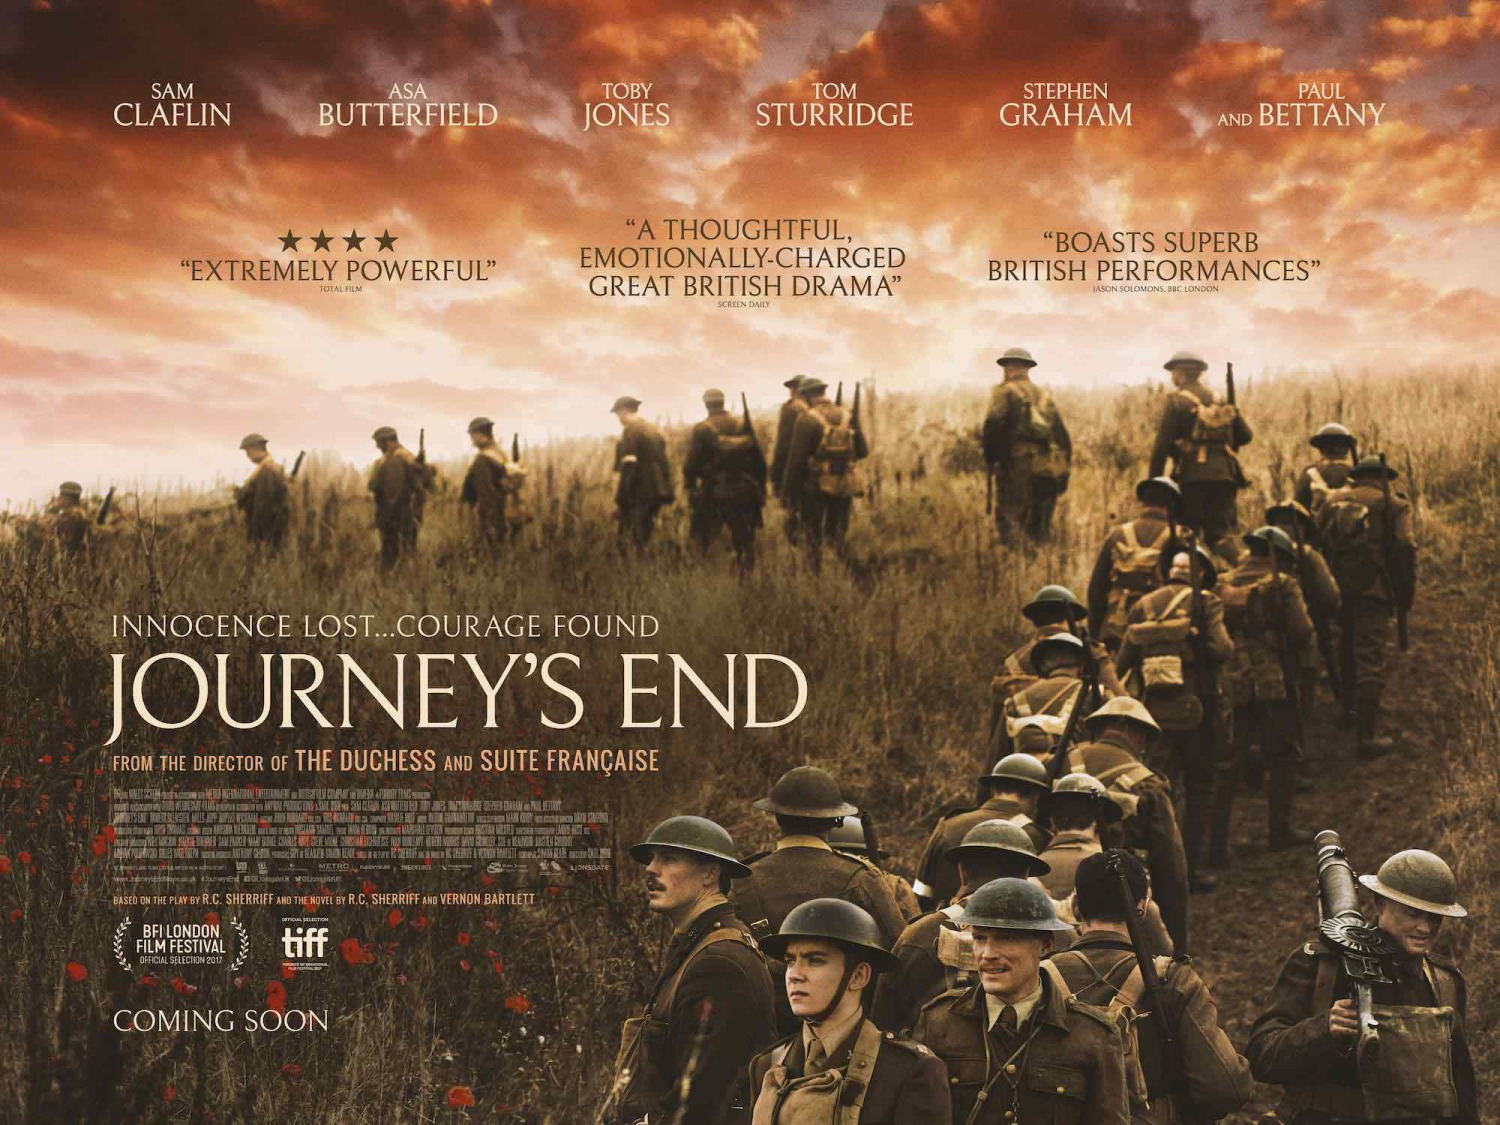 journey s end stanhope Free essay: stanhope's relationship with raleigh in journey's end write about the presentation of stanhope's relationship with raleigh in act two scene one .